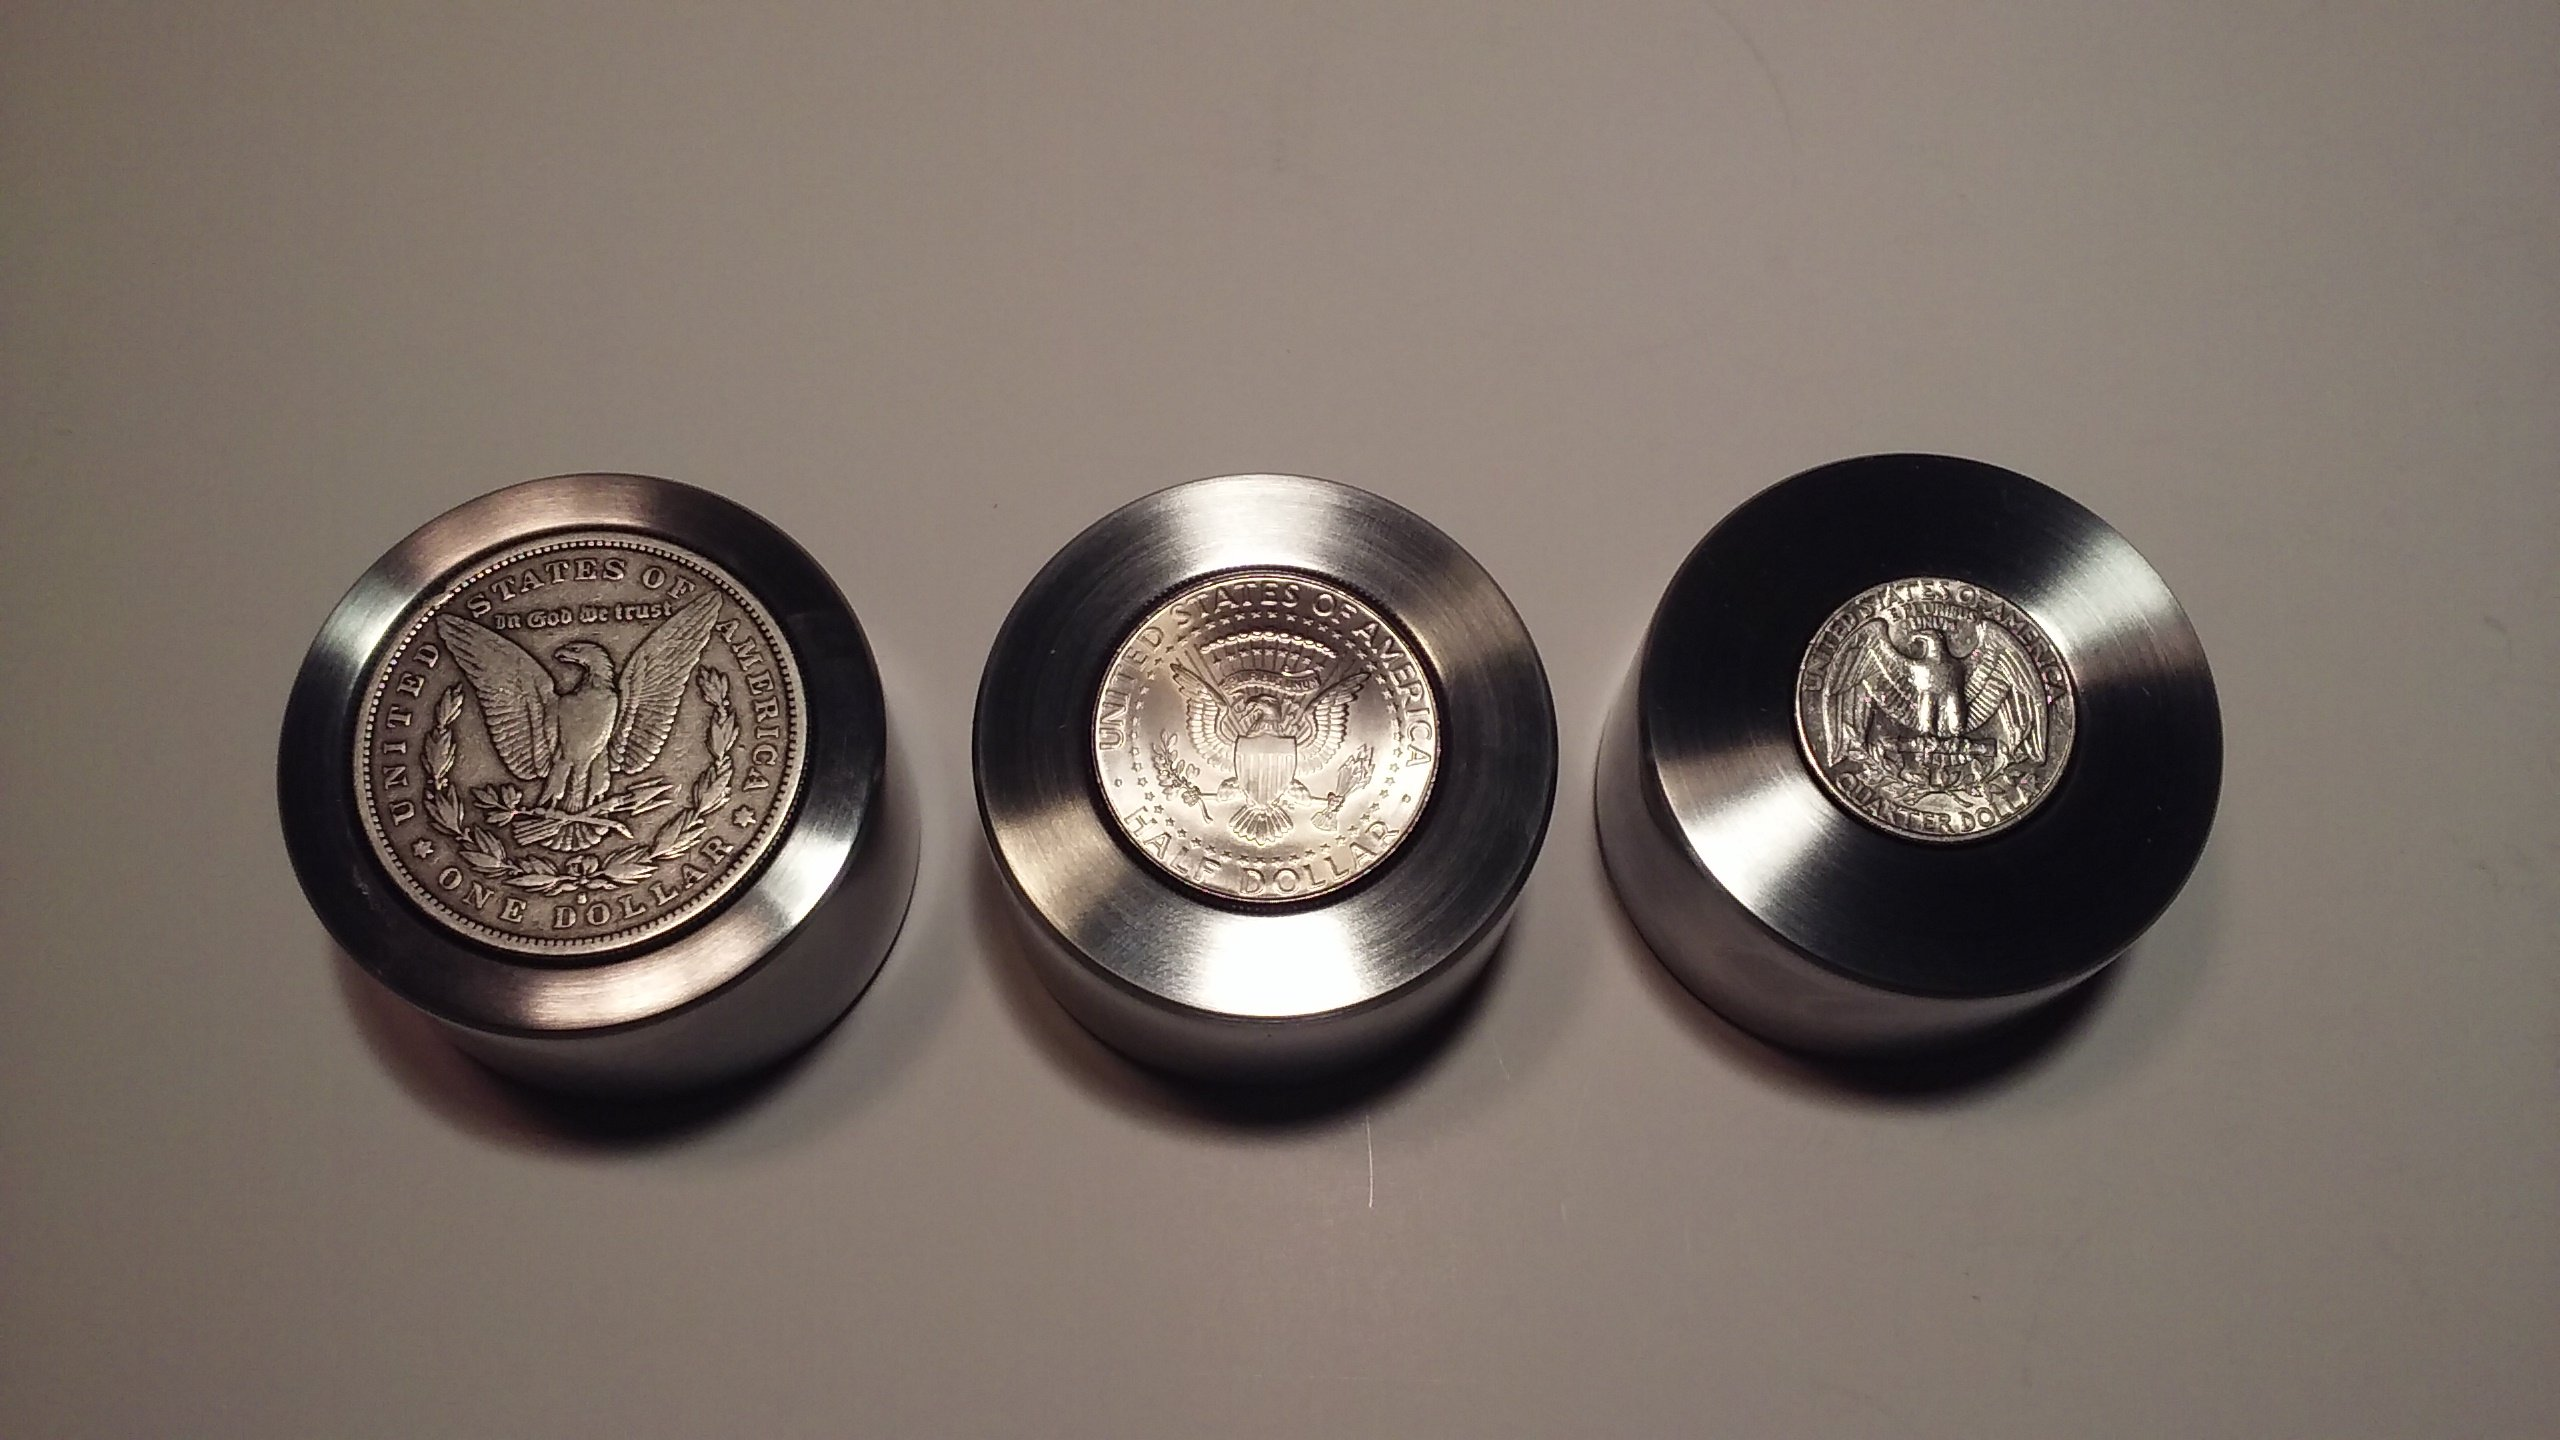 Universal Reduction Die Set For Morgan, 50 Cent. Gold Dollar, Quarter and More! by Austin Swenson